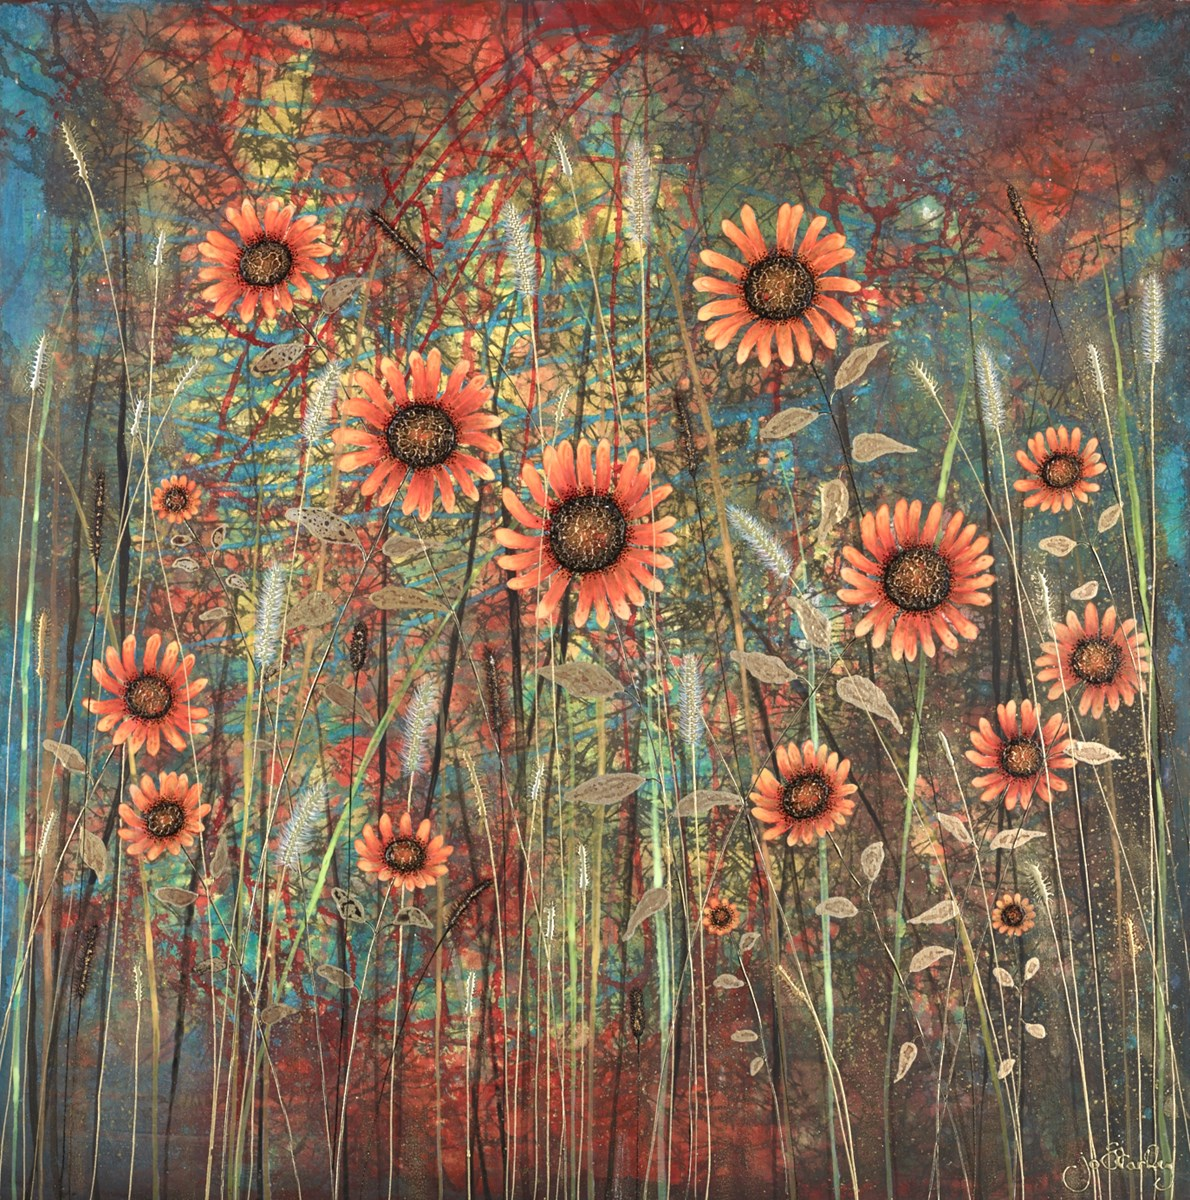 Summer is Golden by jo starkey -  sized 32x32 inches. Available from Whitewall Galleries